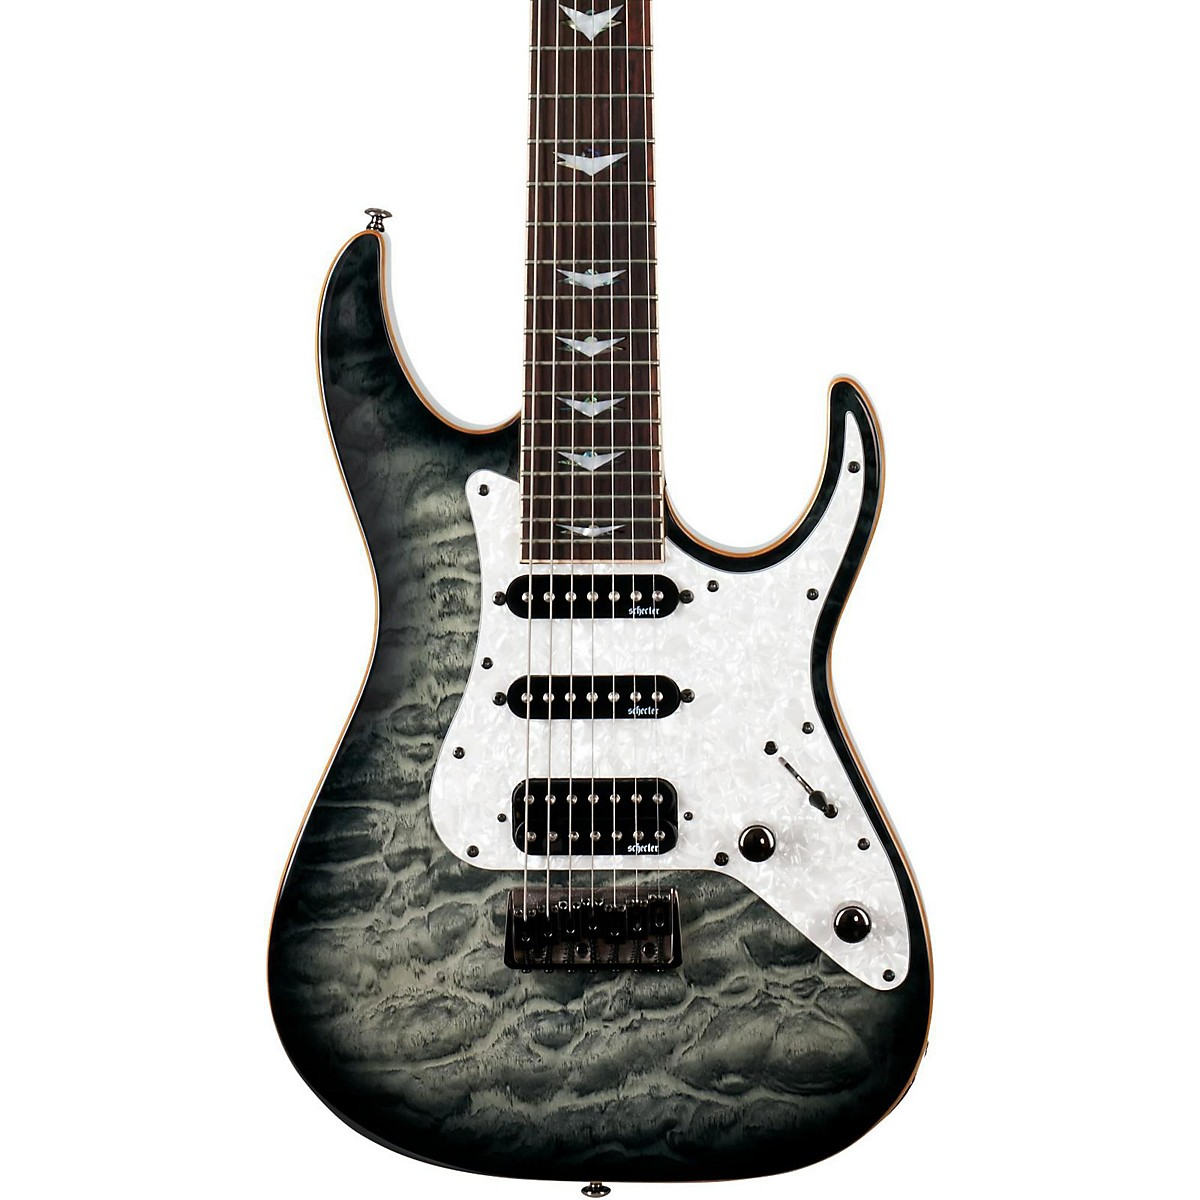 Schecter Guitar Research Banshee-7 Extreme 7-String Electric Guitar